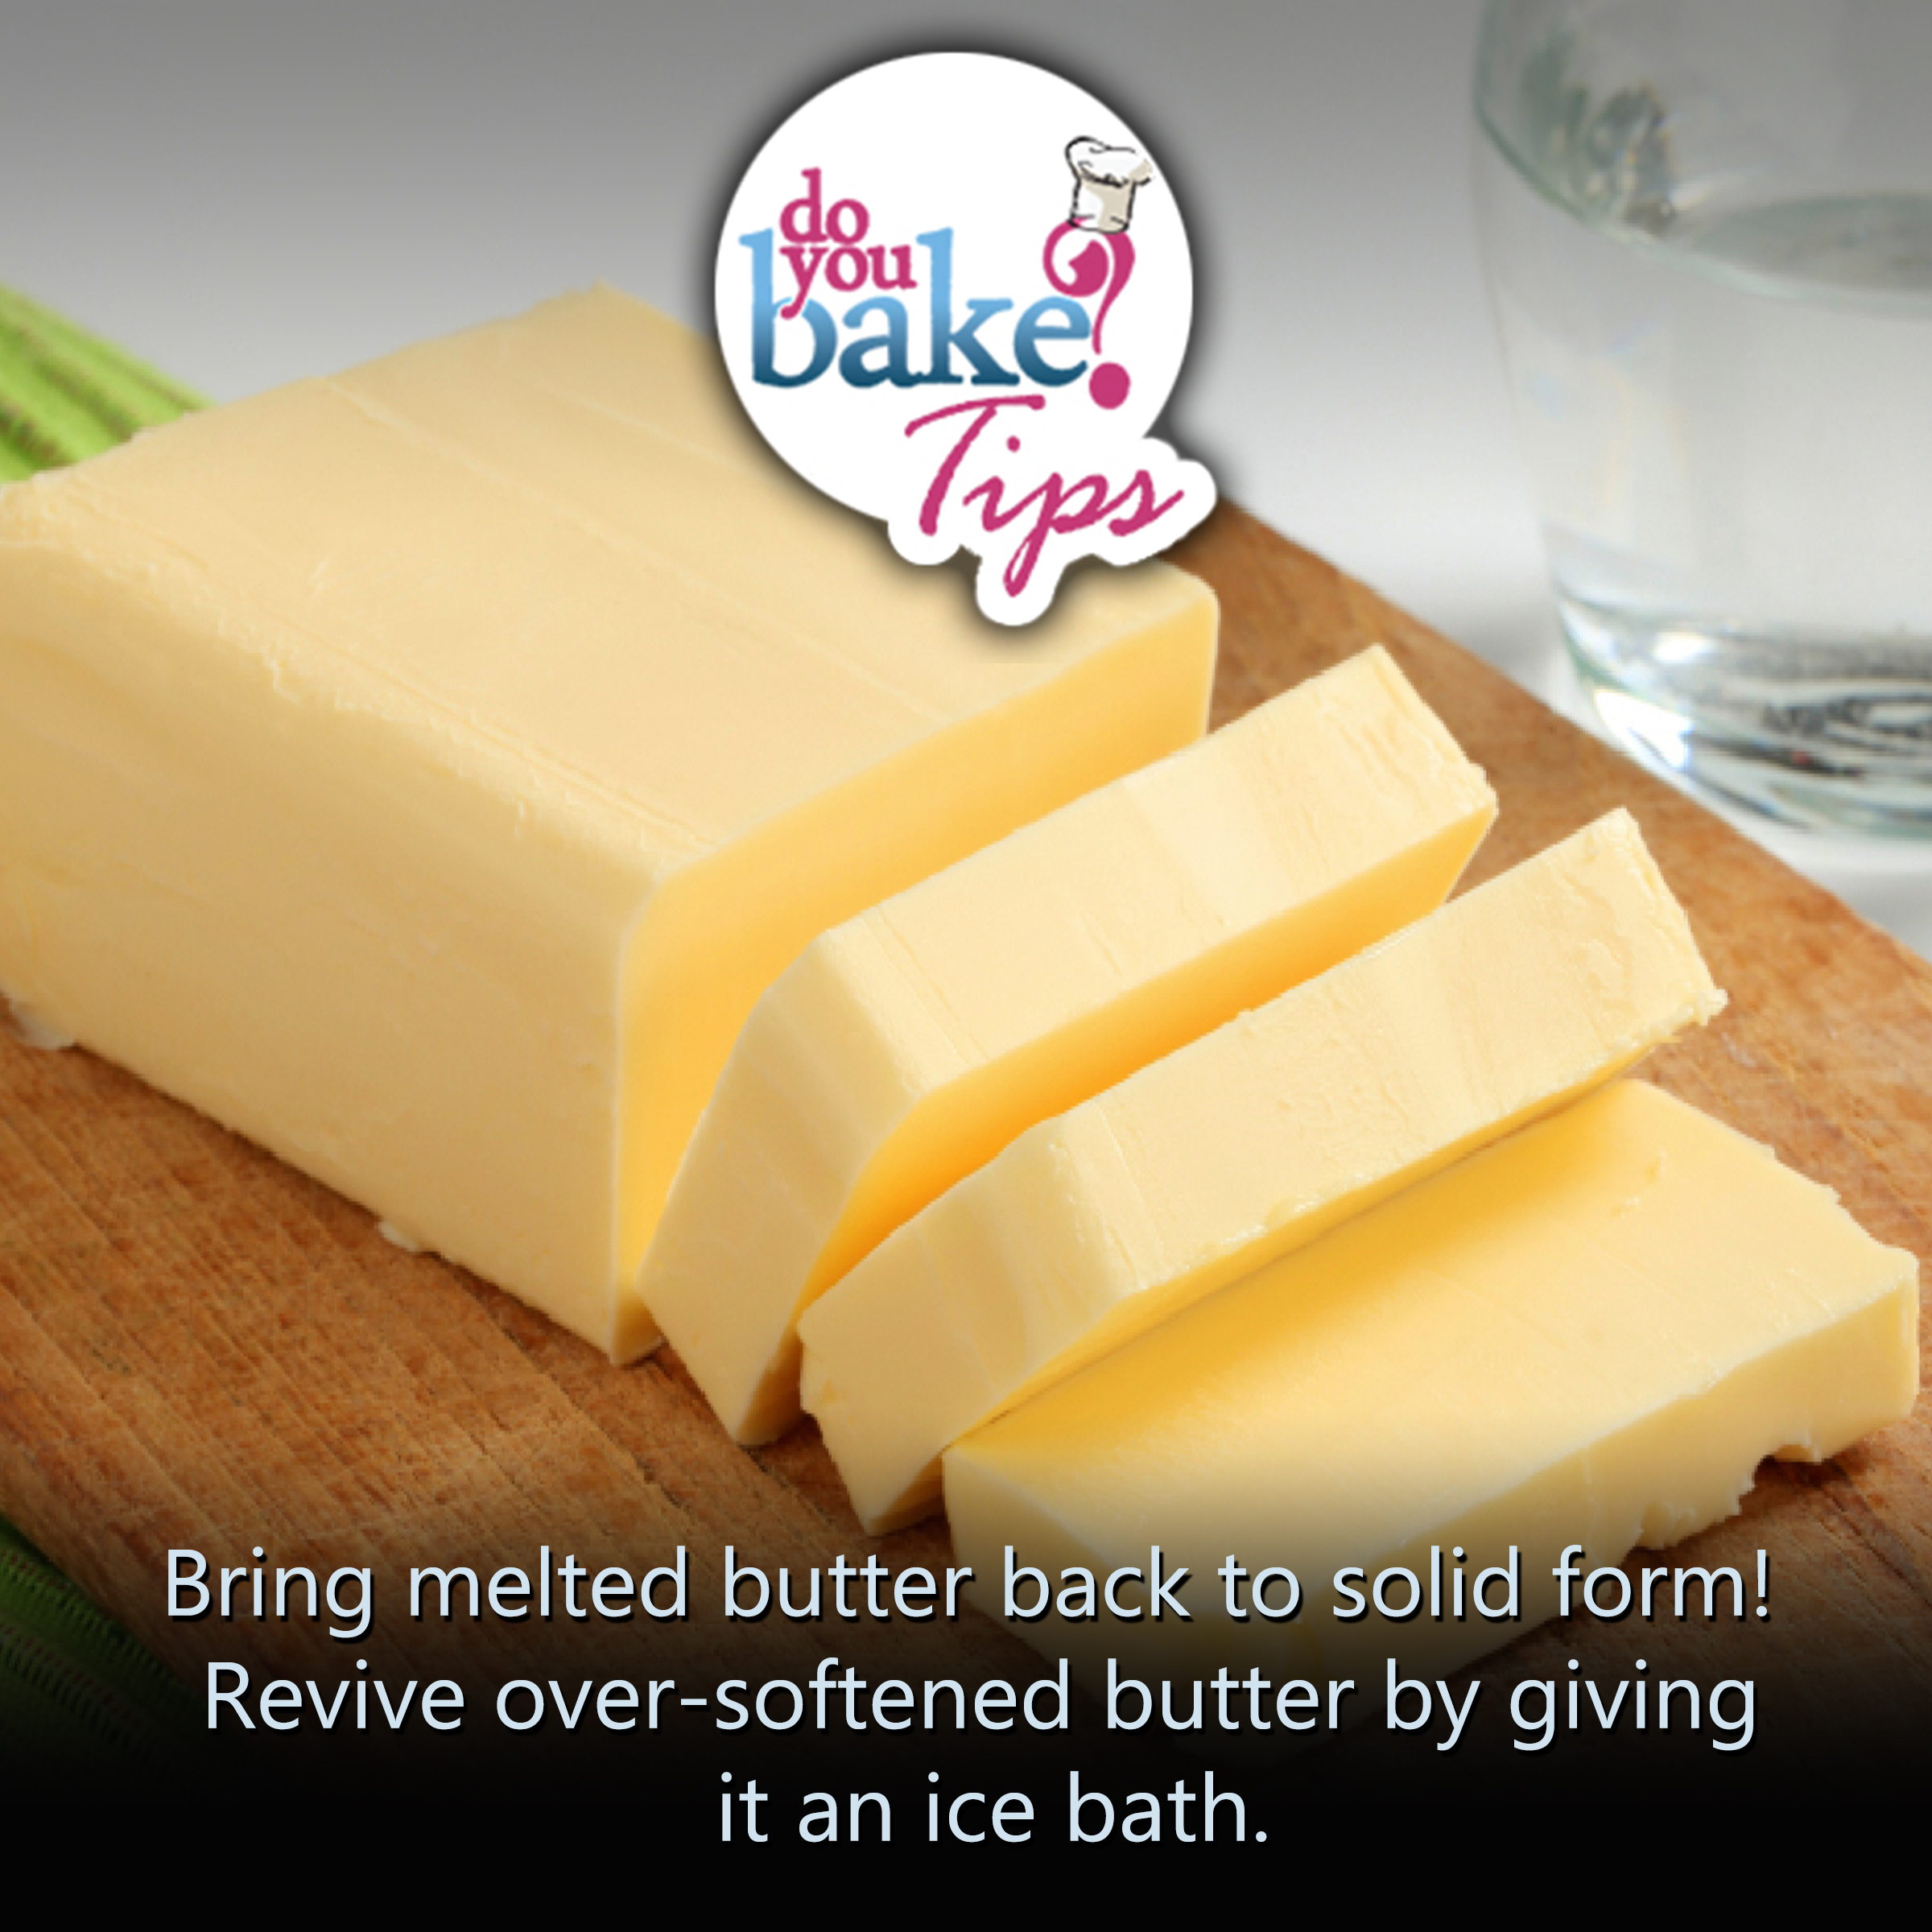 Melted butter back to solid form! – Do You Bake